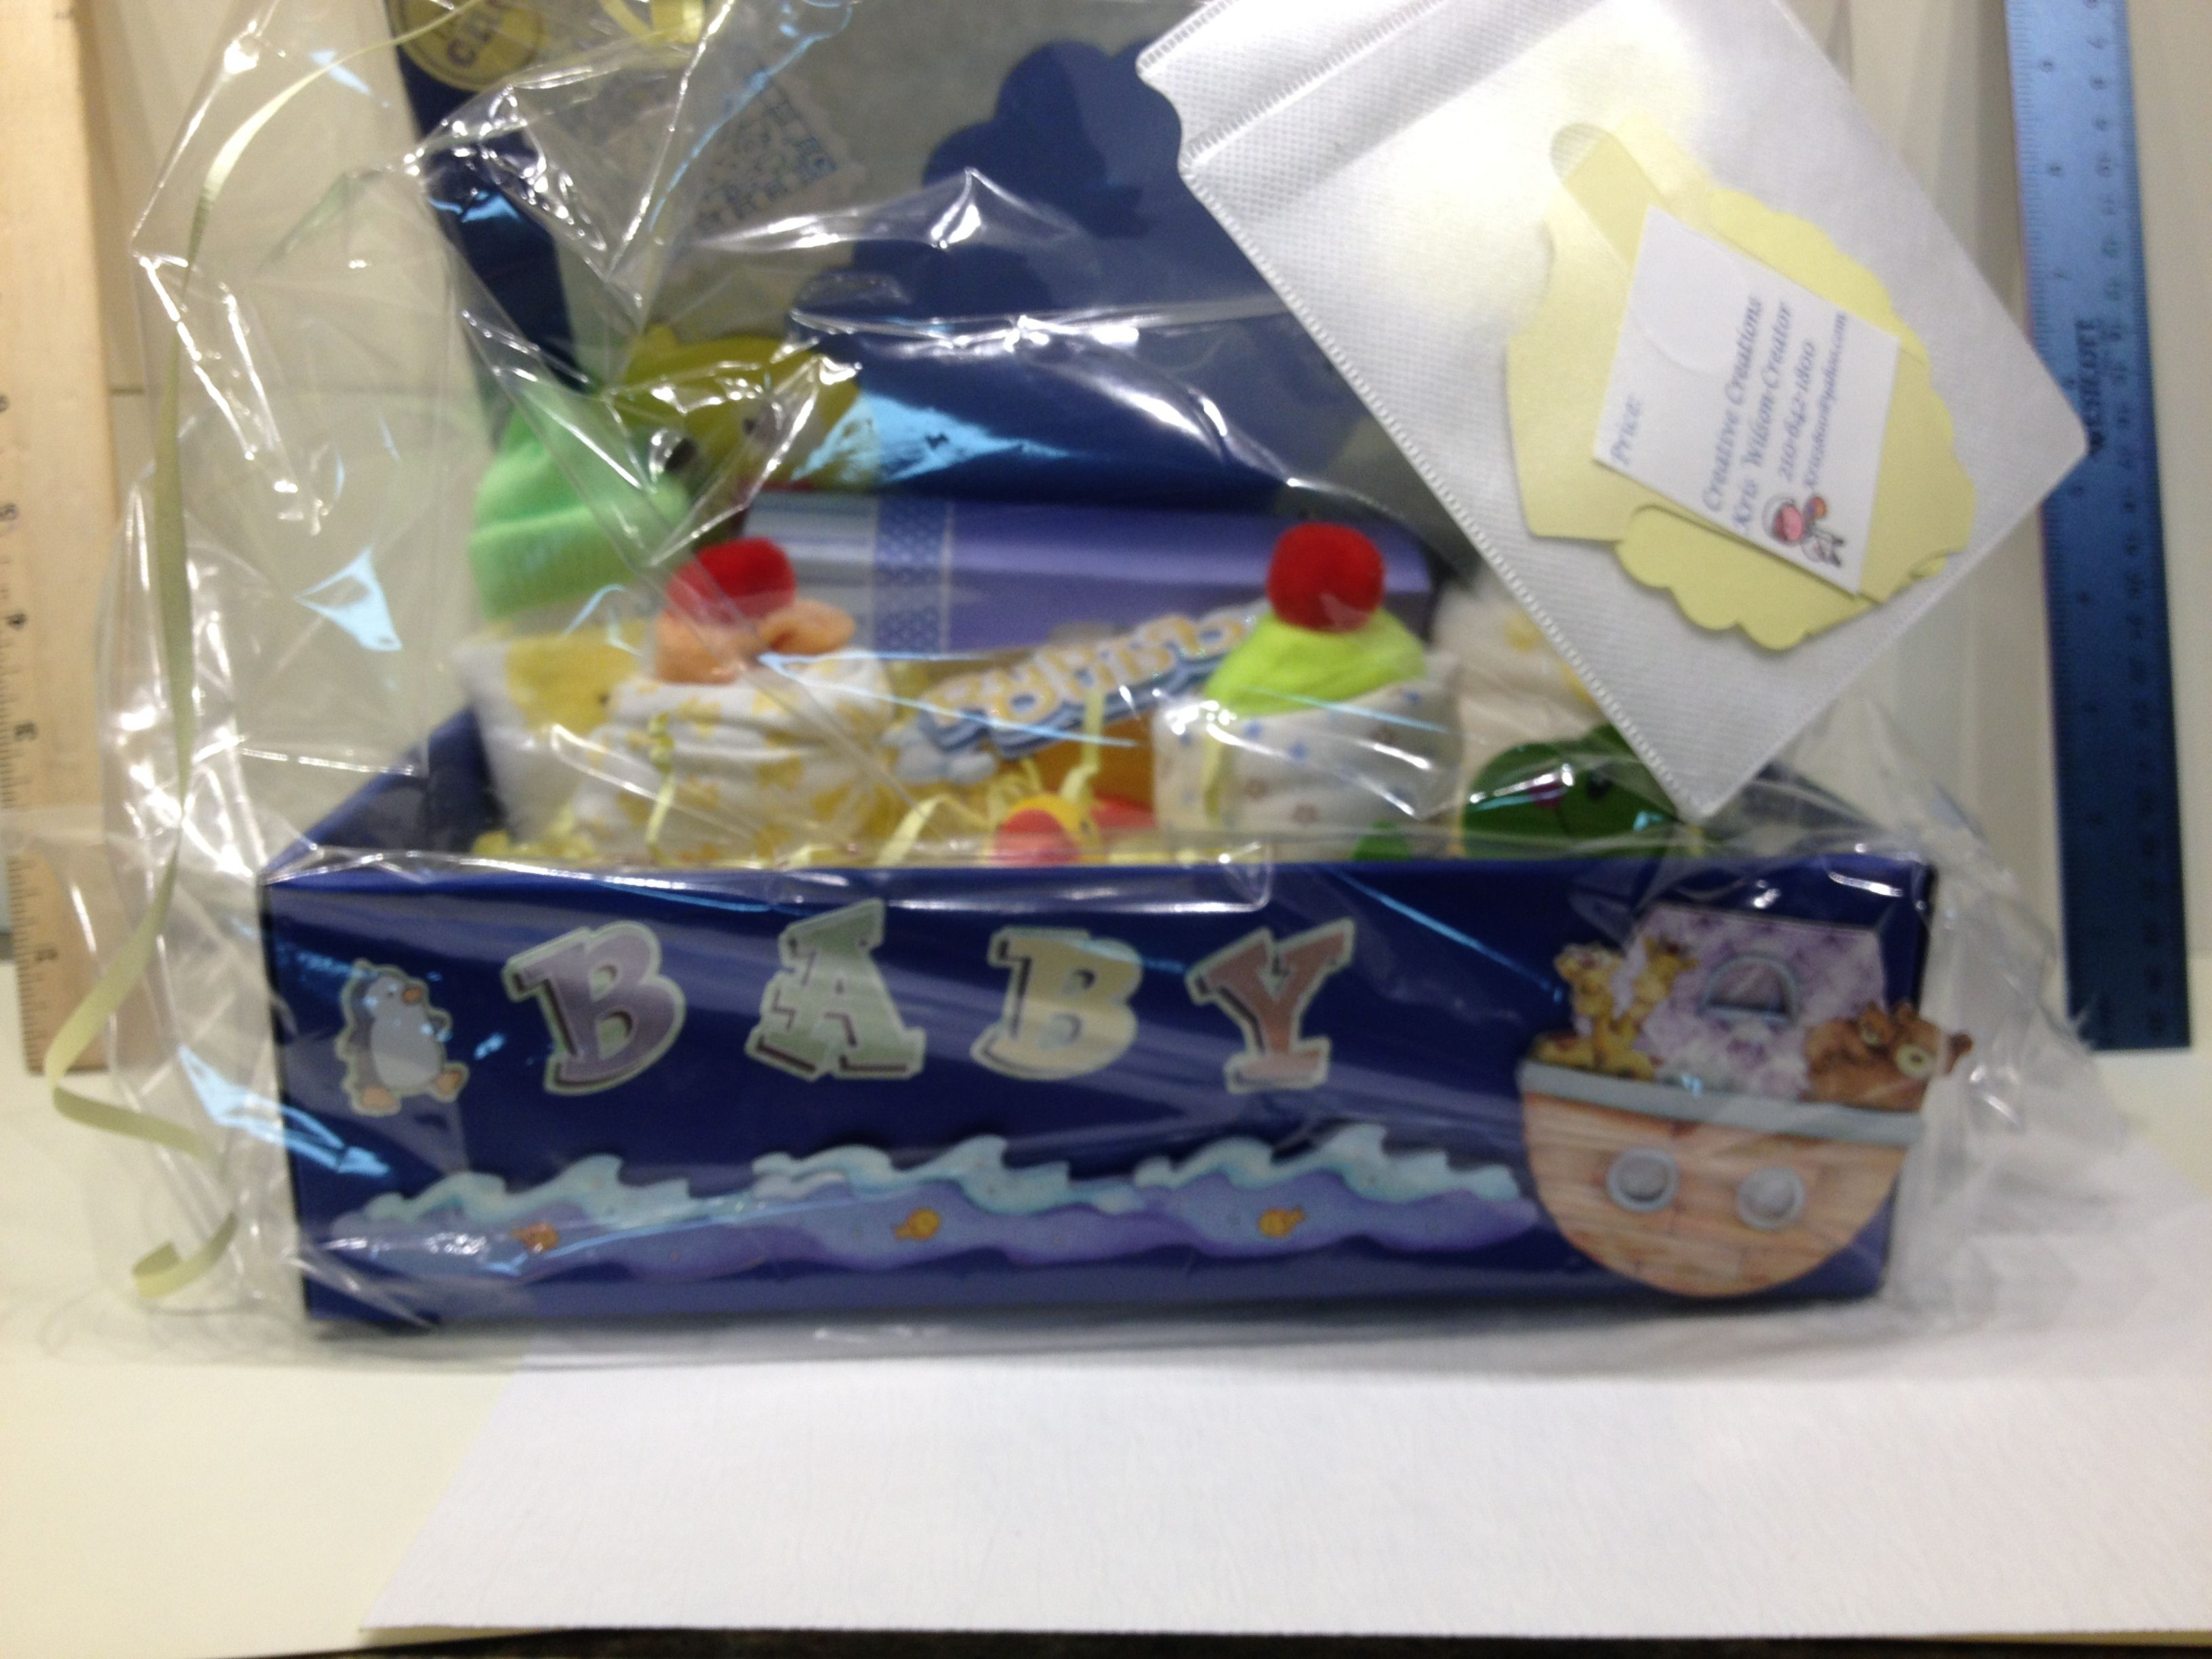 For Sale: Price $40.00 New Baby Bath Gift Set 1. Ready to give ...